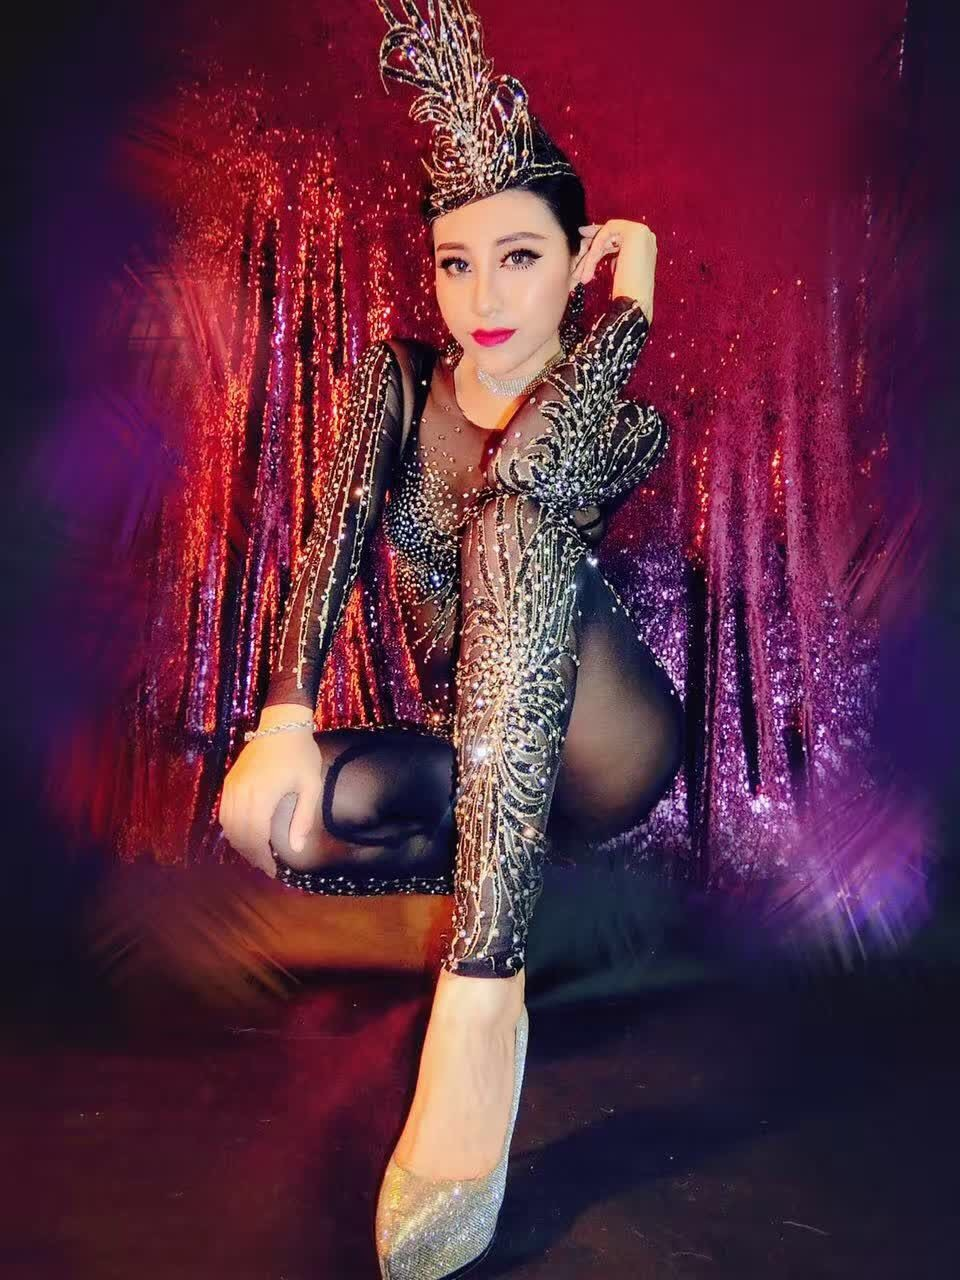 New-Nightclub-Women-s-Black-Rhinestones-Jumpsuit-Outfit-Shinny-Sexy-One-Piece-Party-Dress-Costume-With